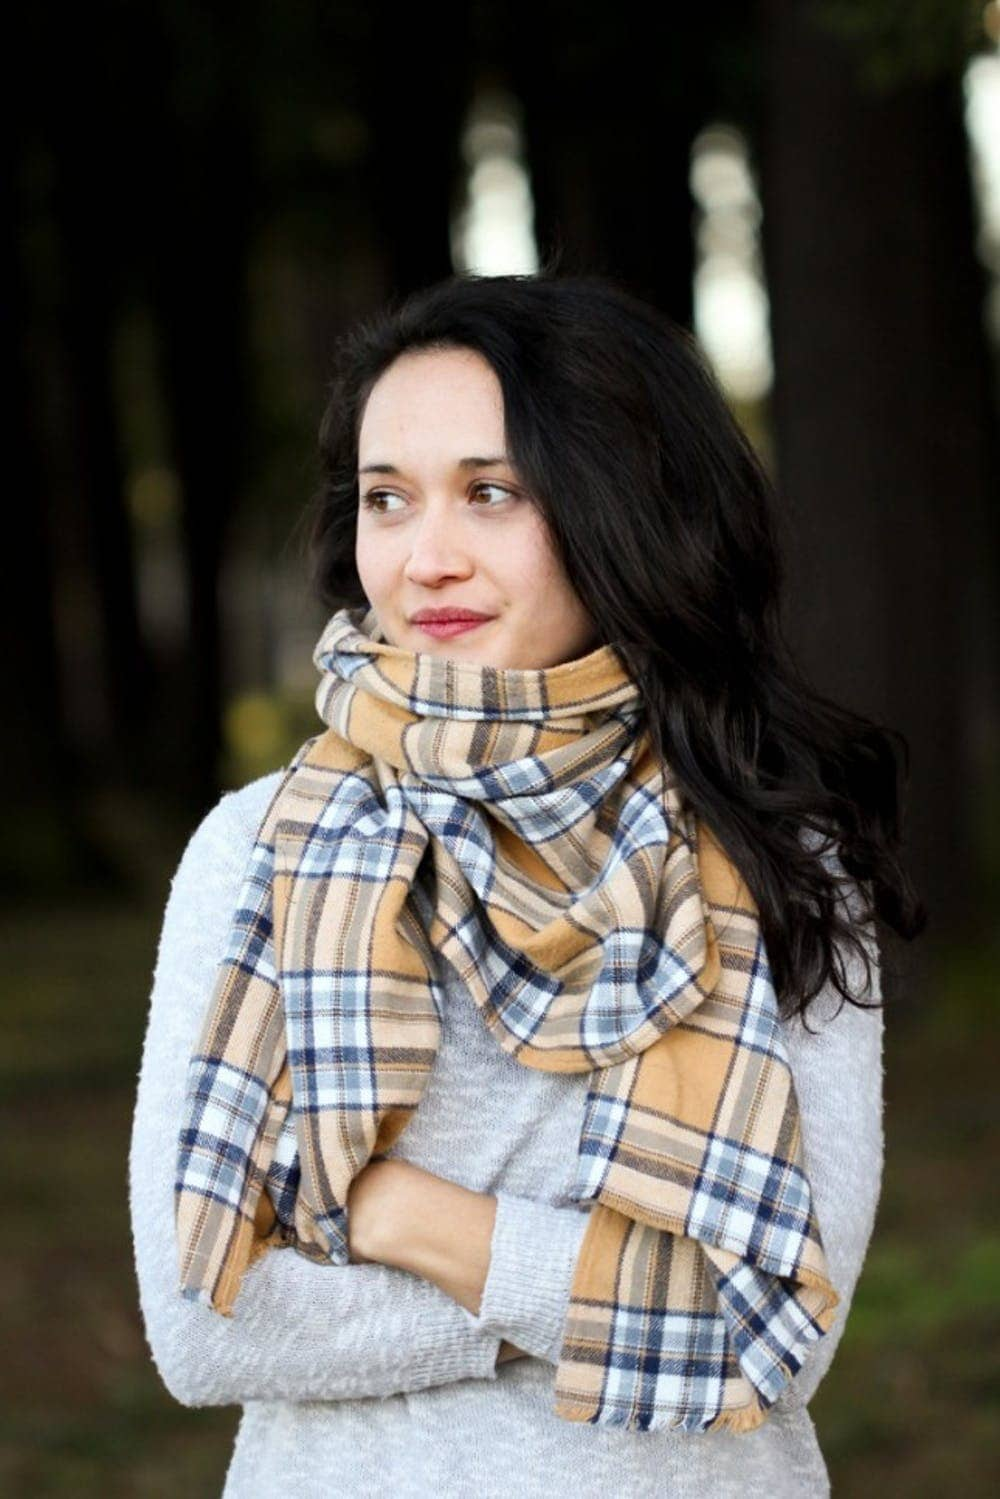 Flannel scarves